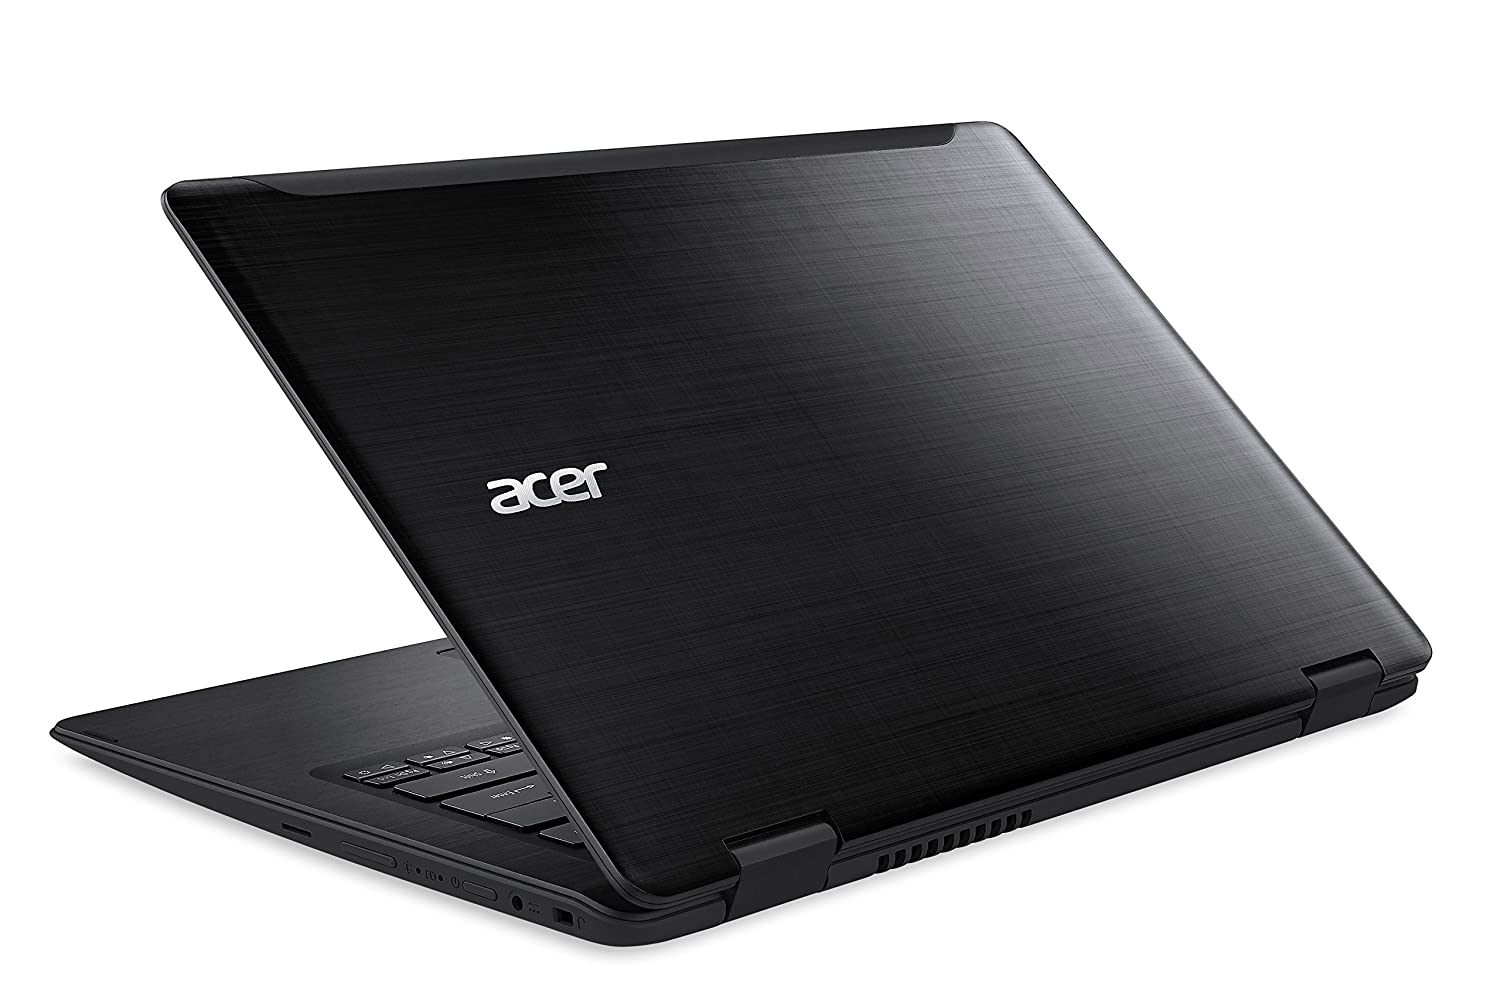 Acer Aspire R 15 - Ordenador portátil convertible de 13.3 Full HD (Intel Core i3, 4 GB de RAM, 128 GB SSD, UMA, Windows 10), negro: Amazon.es: Informática